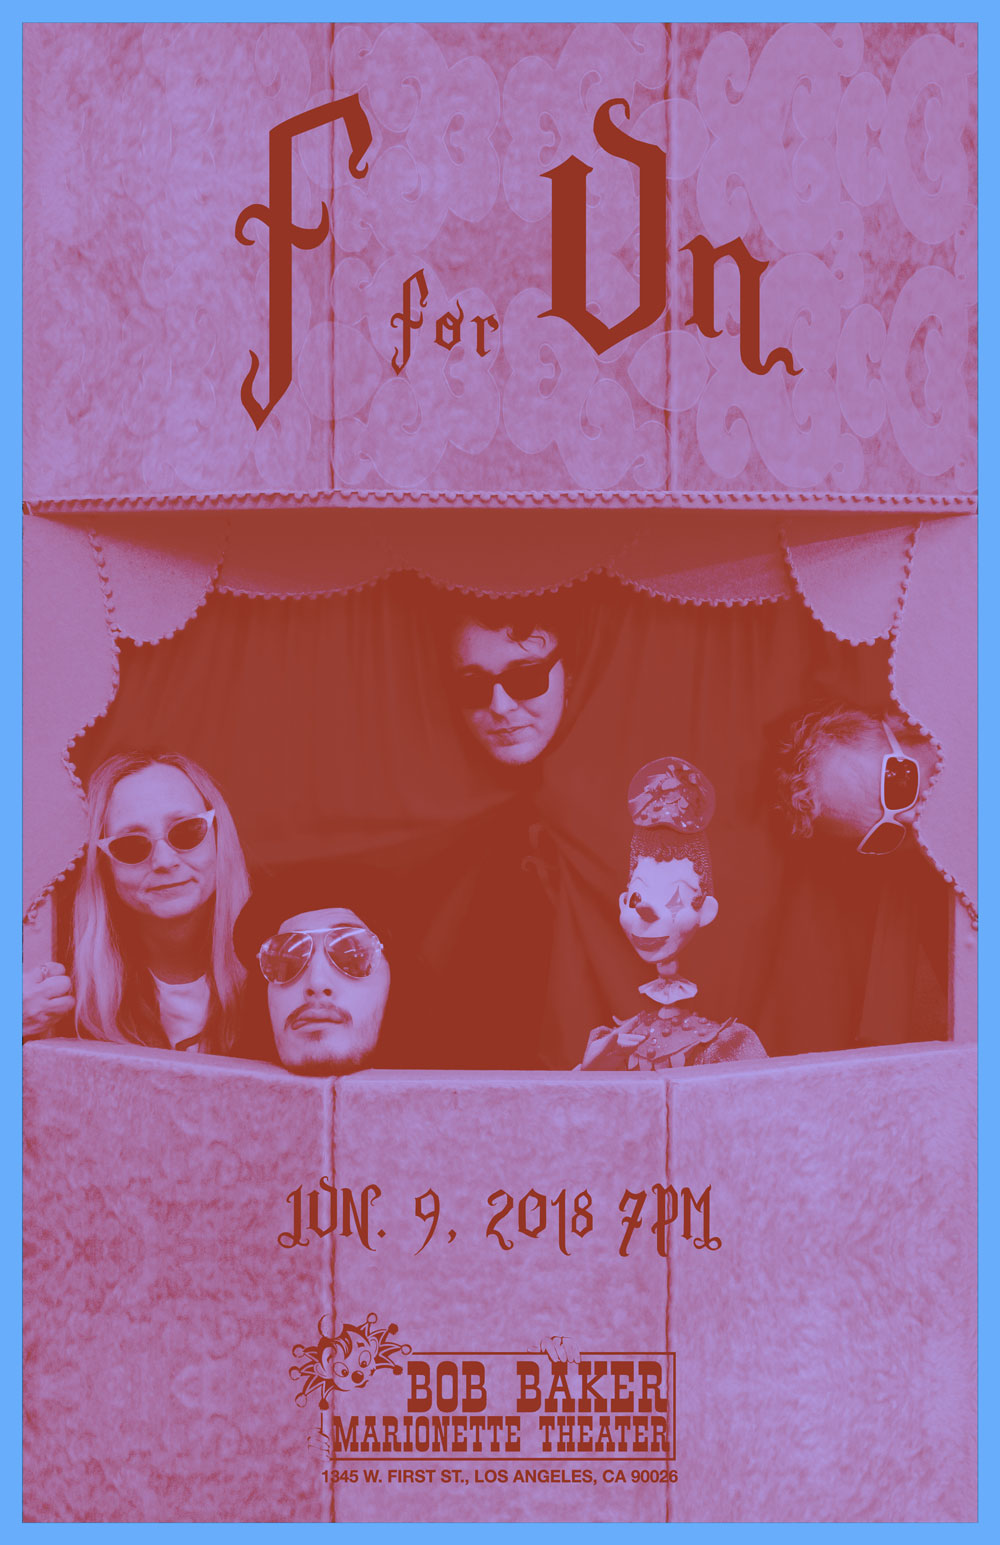 F_for_Un_Poster_Jun9th_low.jpg